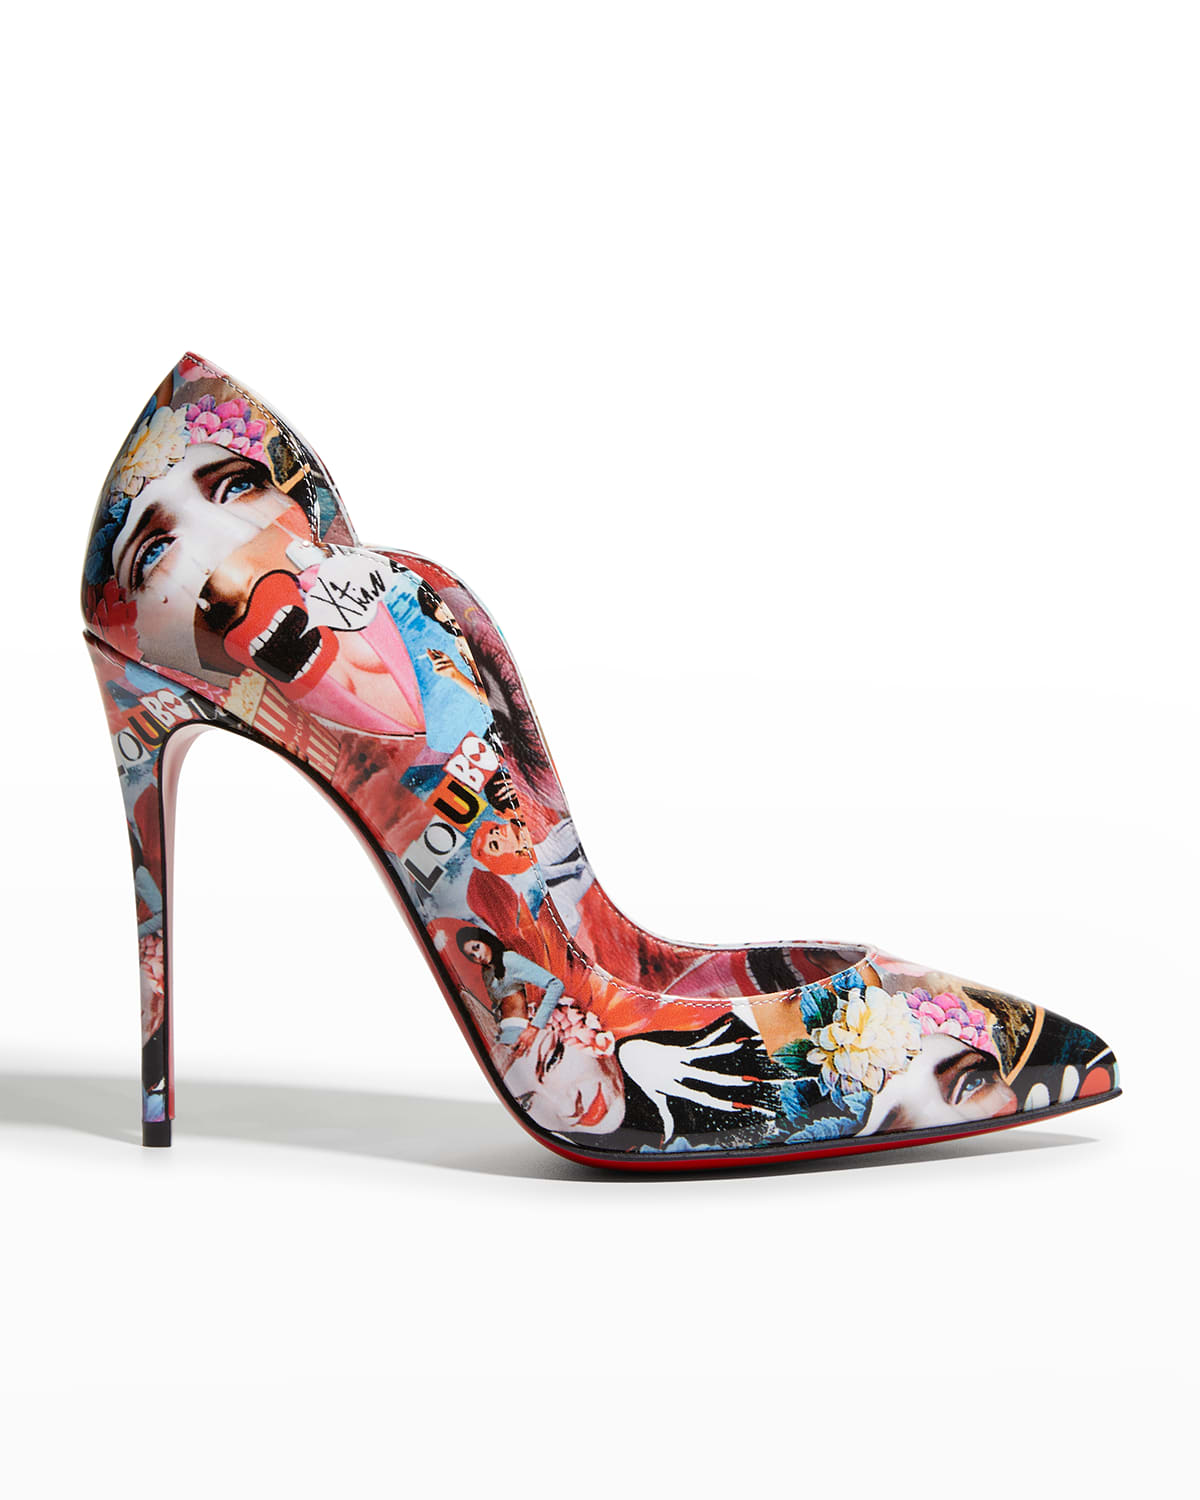 Hot Chick Graphic Love Red Sole Pumps